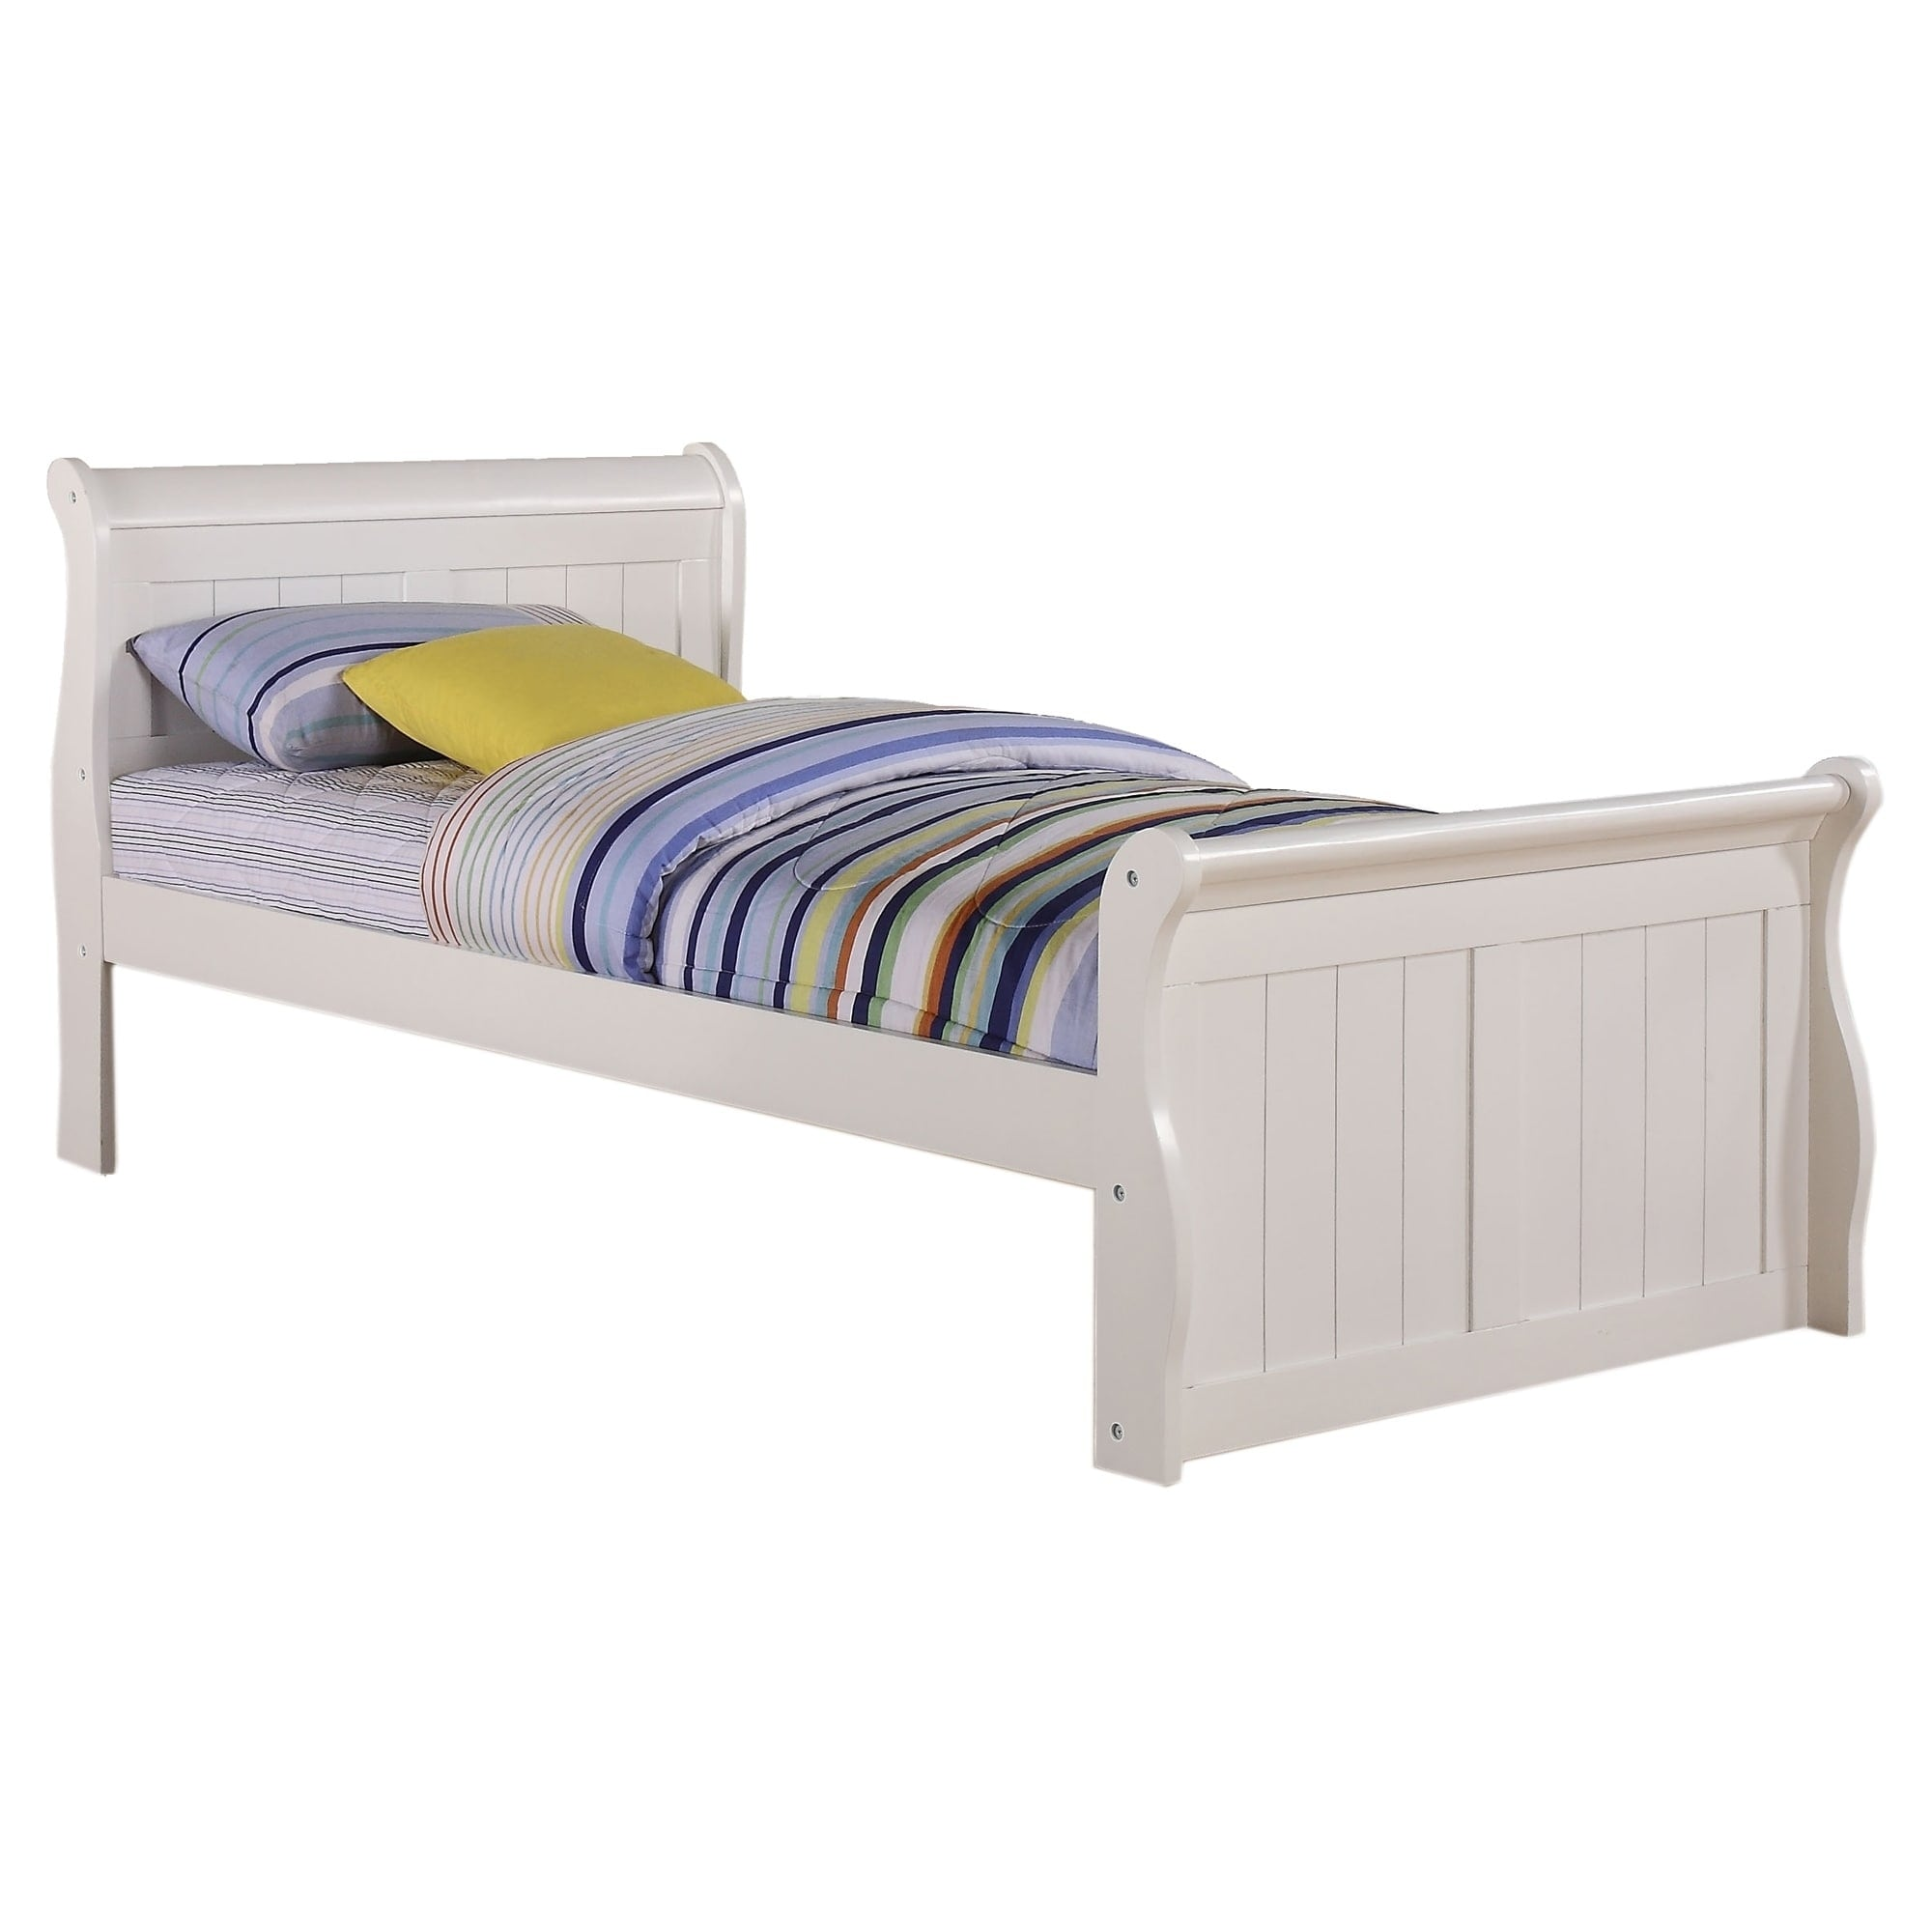 Donco Kids White Sleigh Bed (Twin)